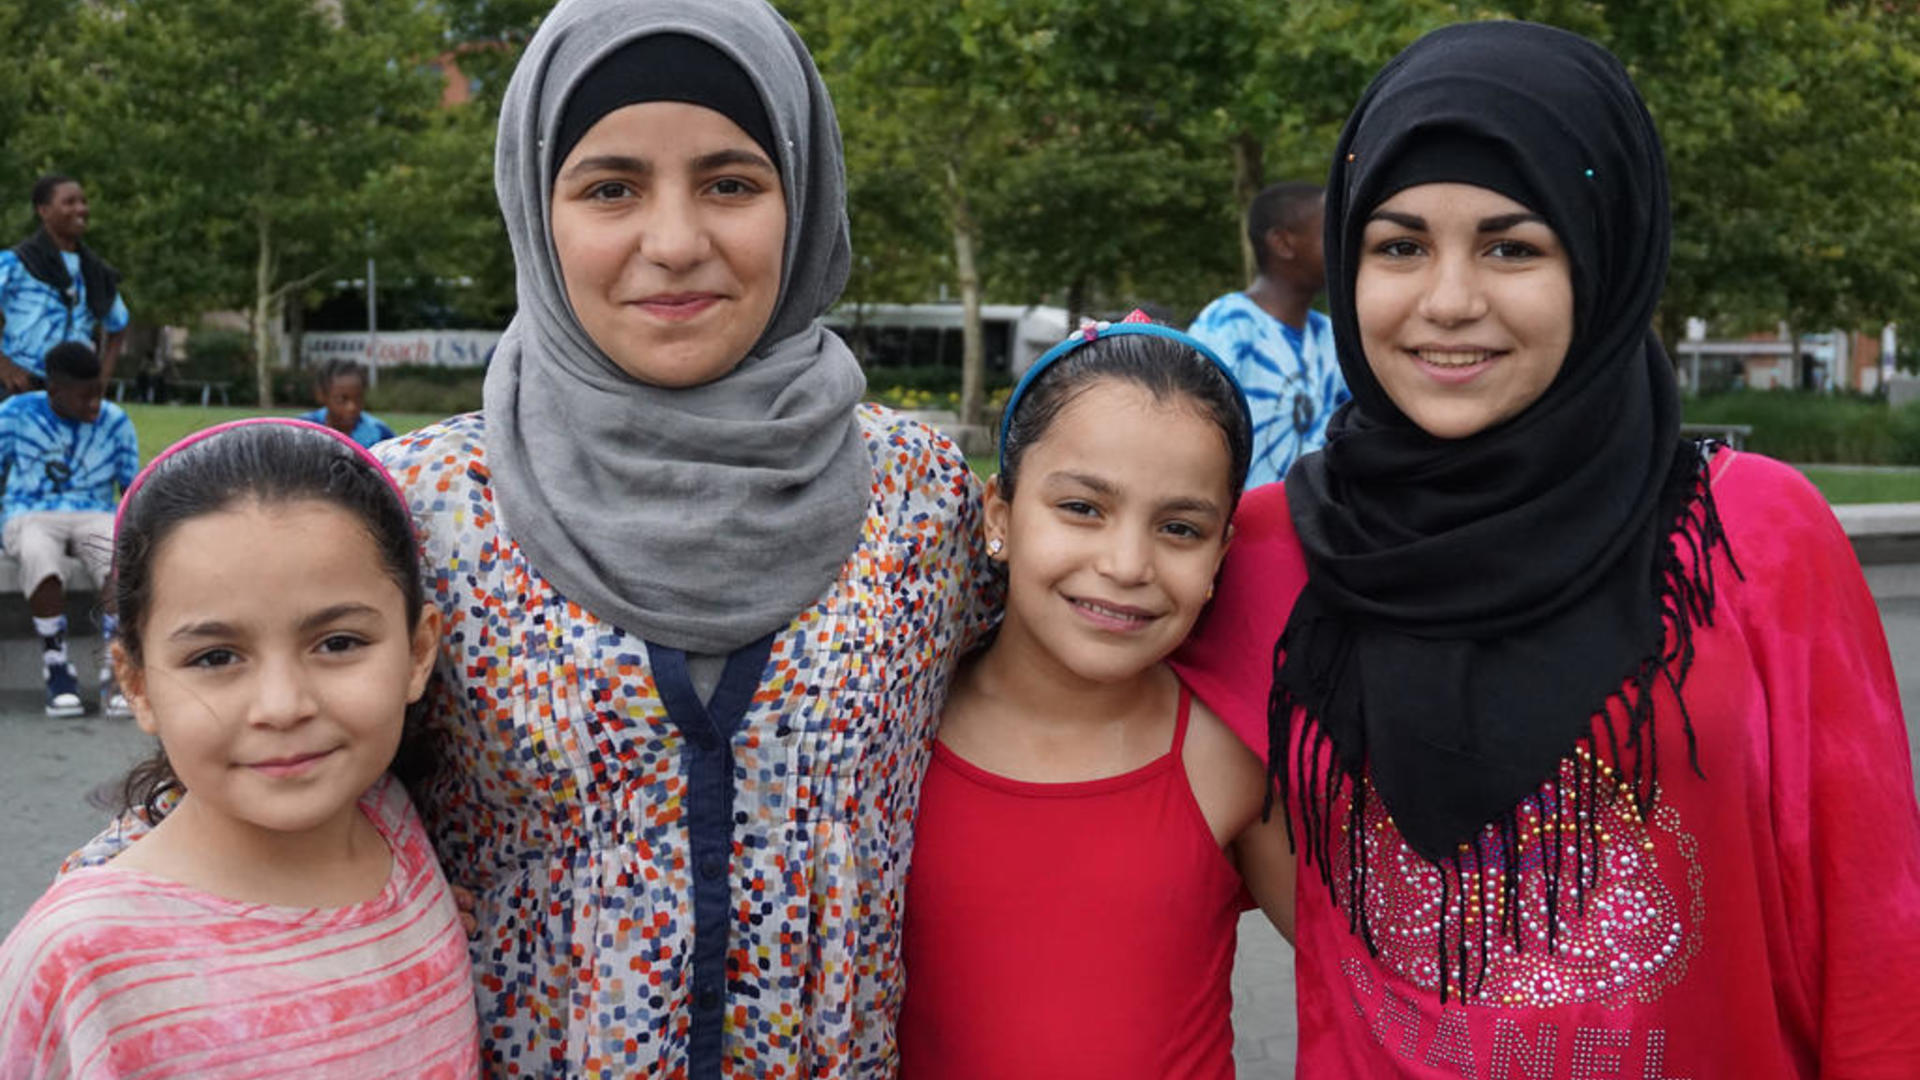 Syrian sisters resettled in Baltimore